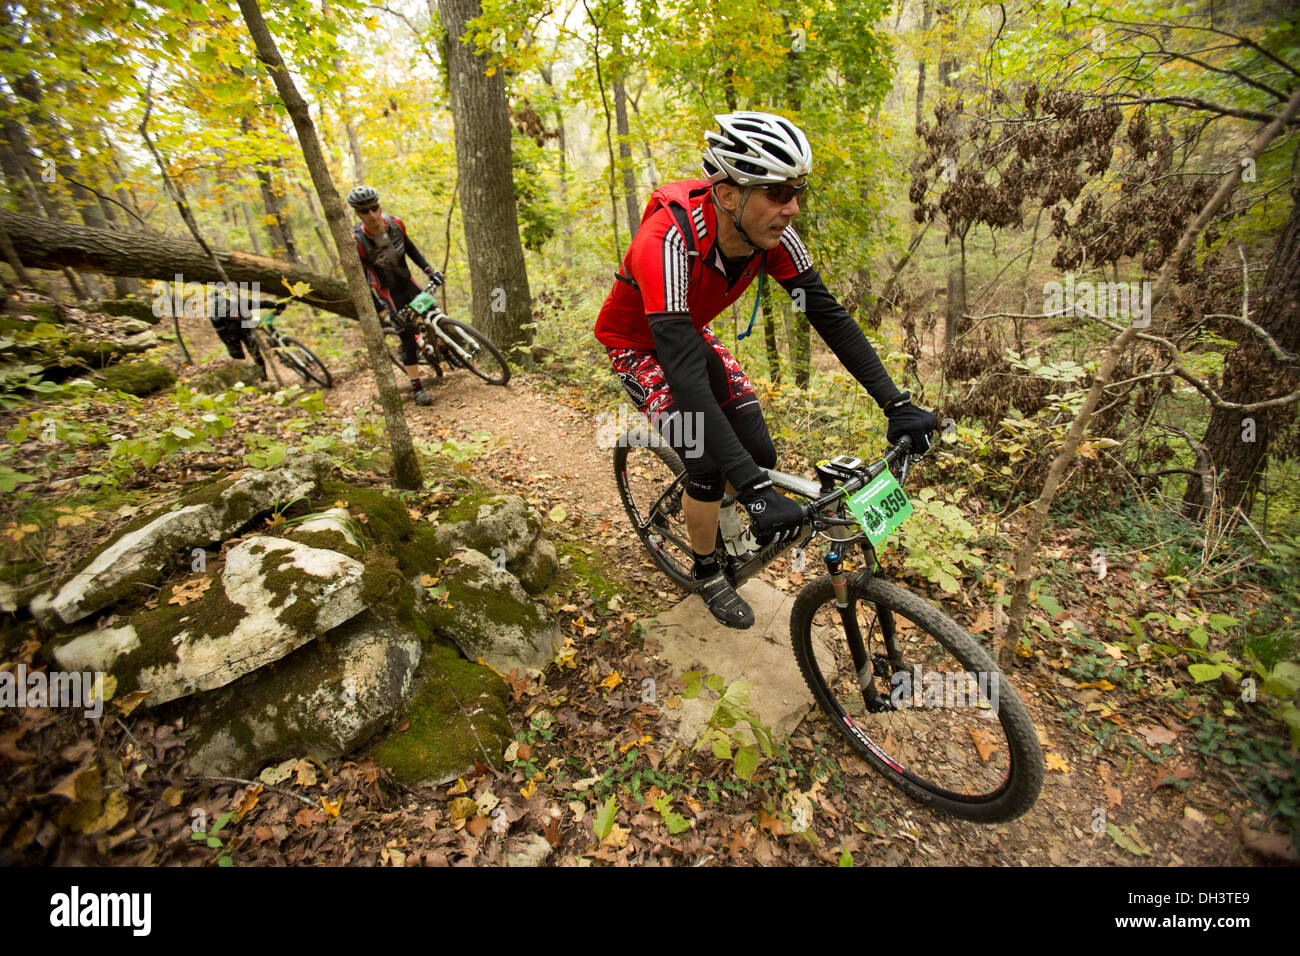 Mountain bikers ride along a forest trail system at Blowing Springs Park in Bella Vista, Arkansas. - Stock Image